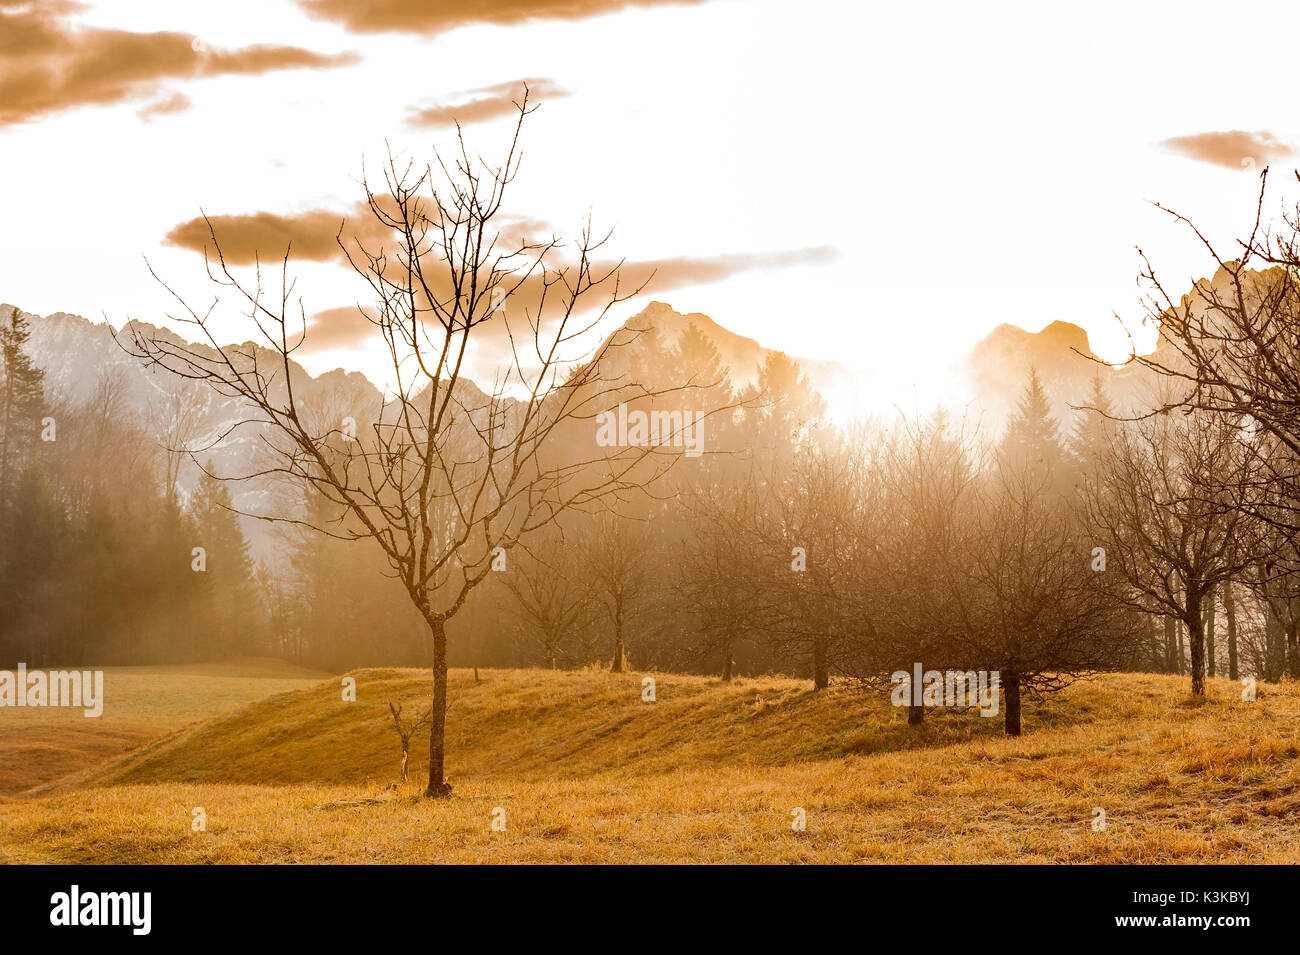 Single tree of an orchard meadow in the violent back light of the sundown about the Karwendelgebirge (mountains) with fog. - Stock Image